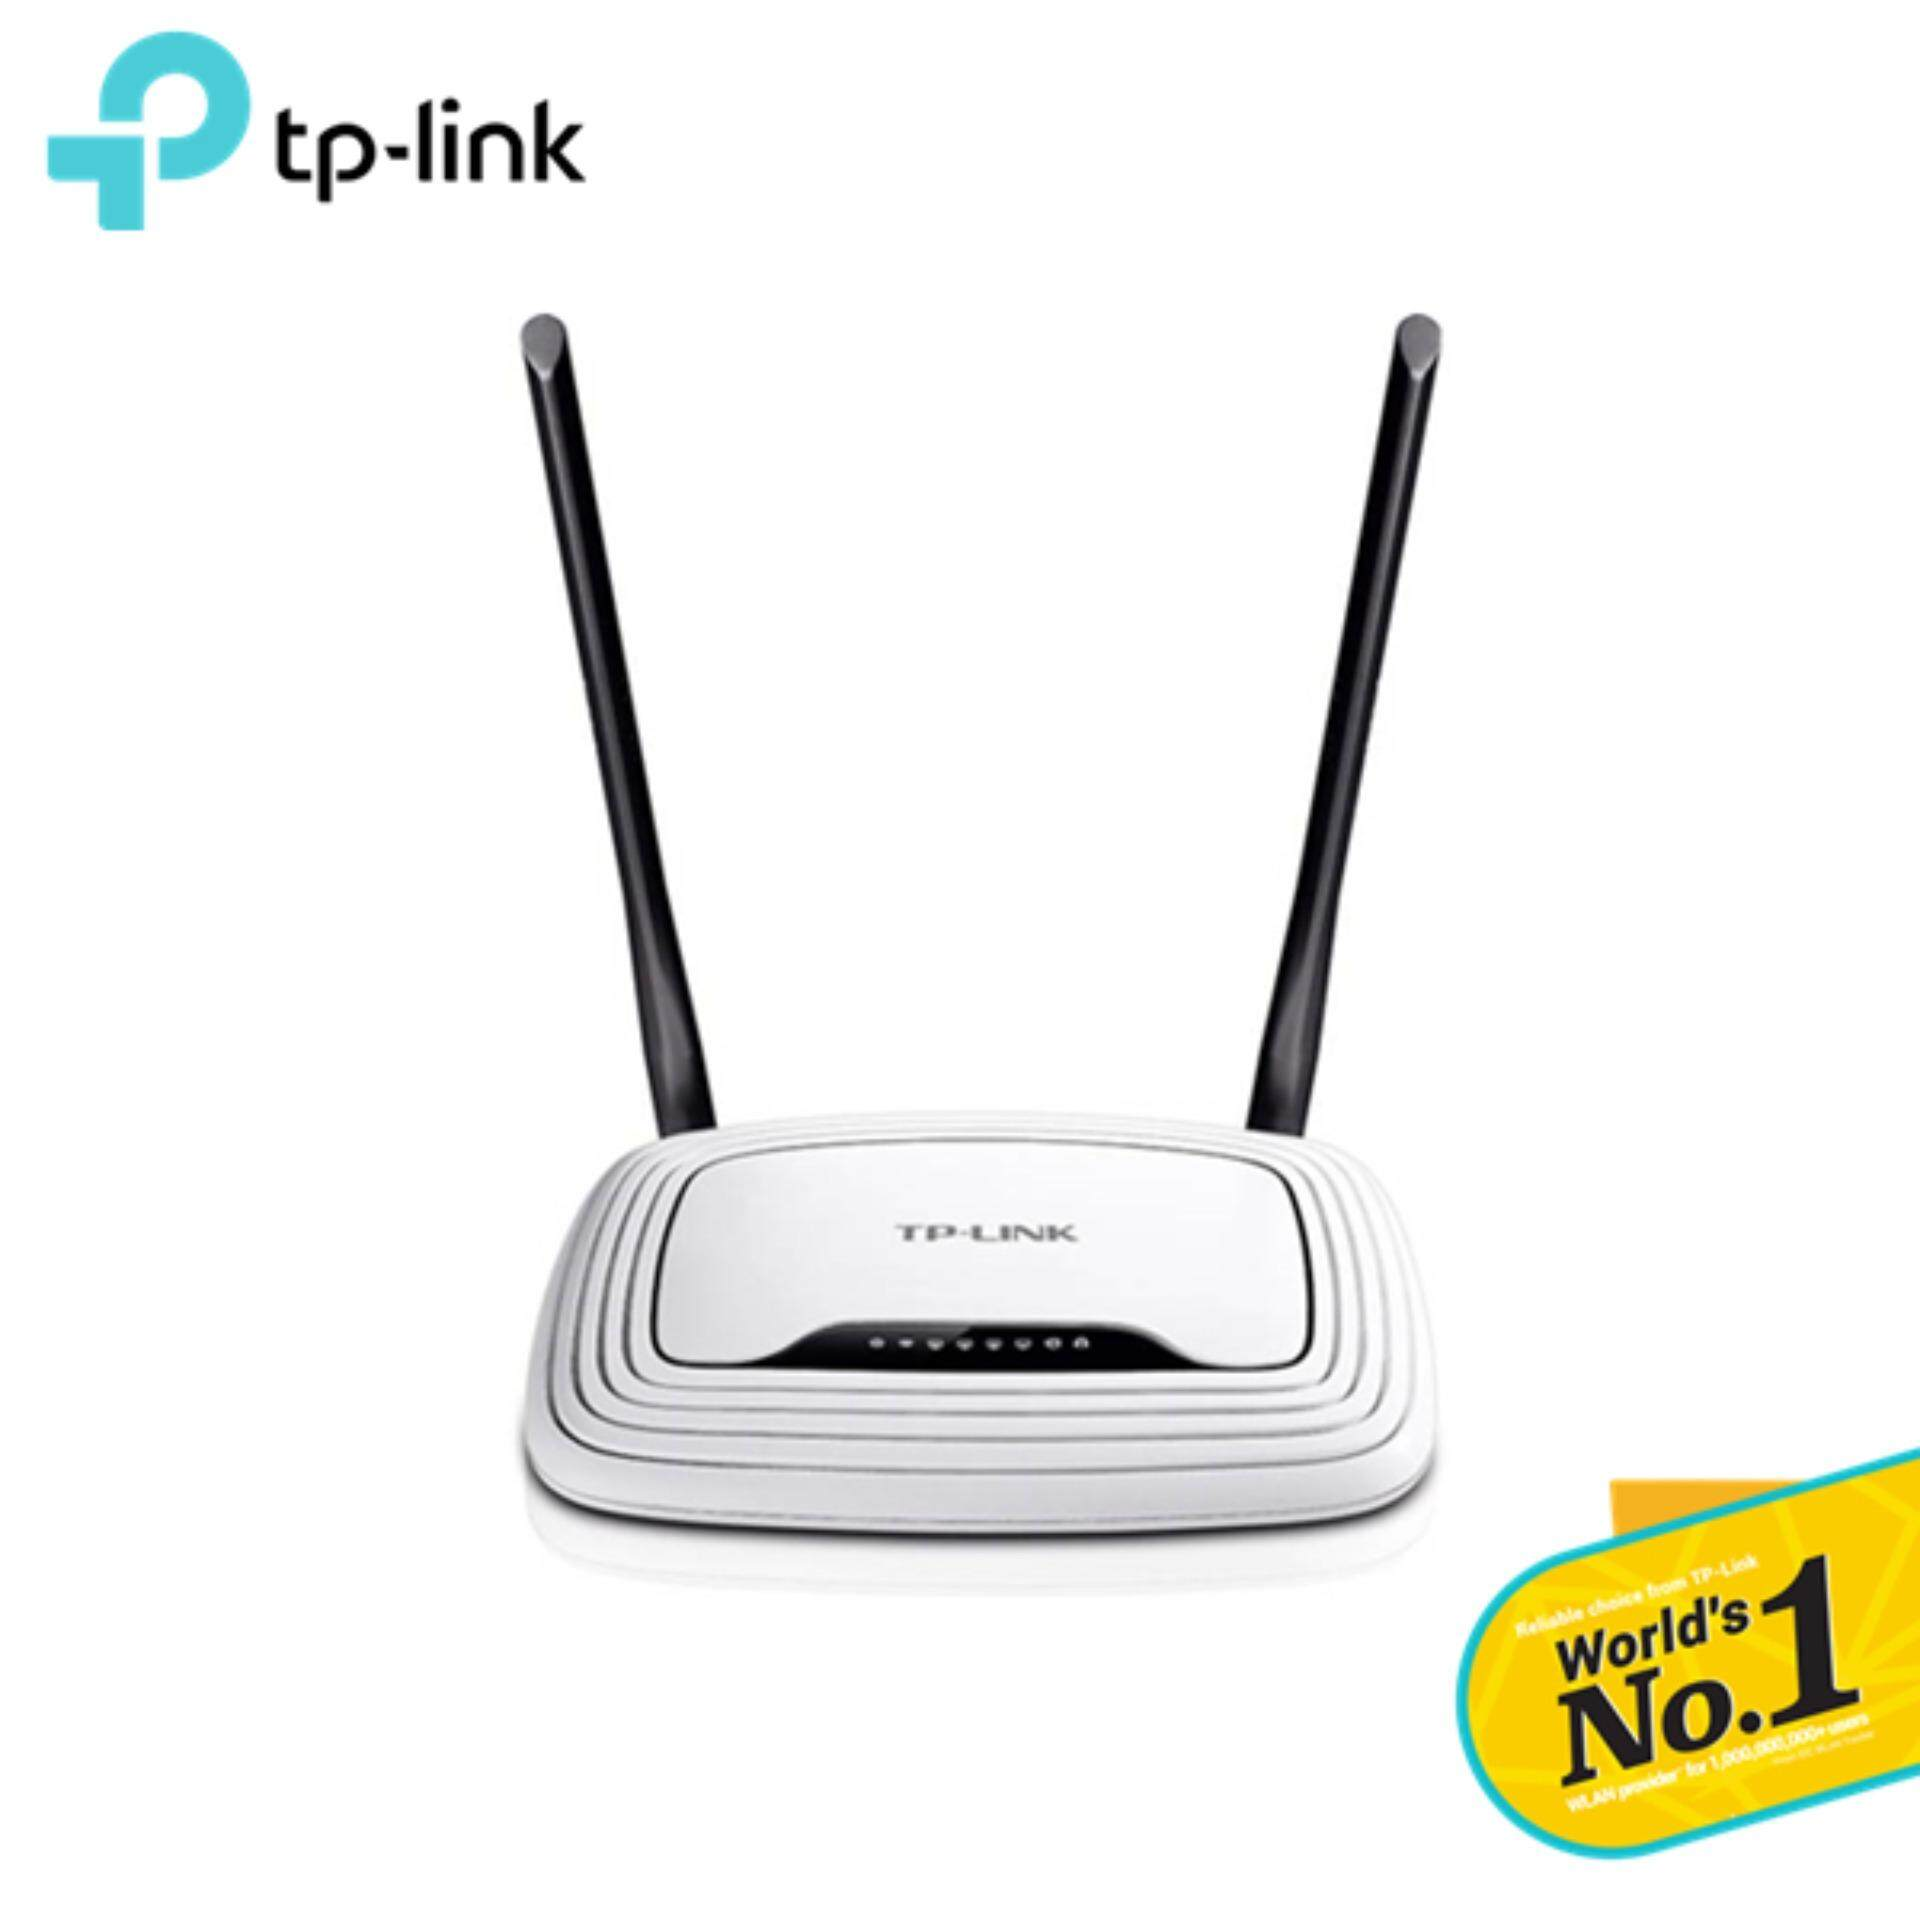 Tp Link Usb Wifi Tl Wn 821n Speed 300 Mbps Wr841n 300mbps Wireless Router